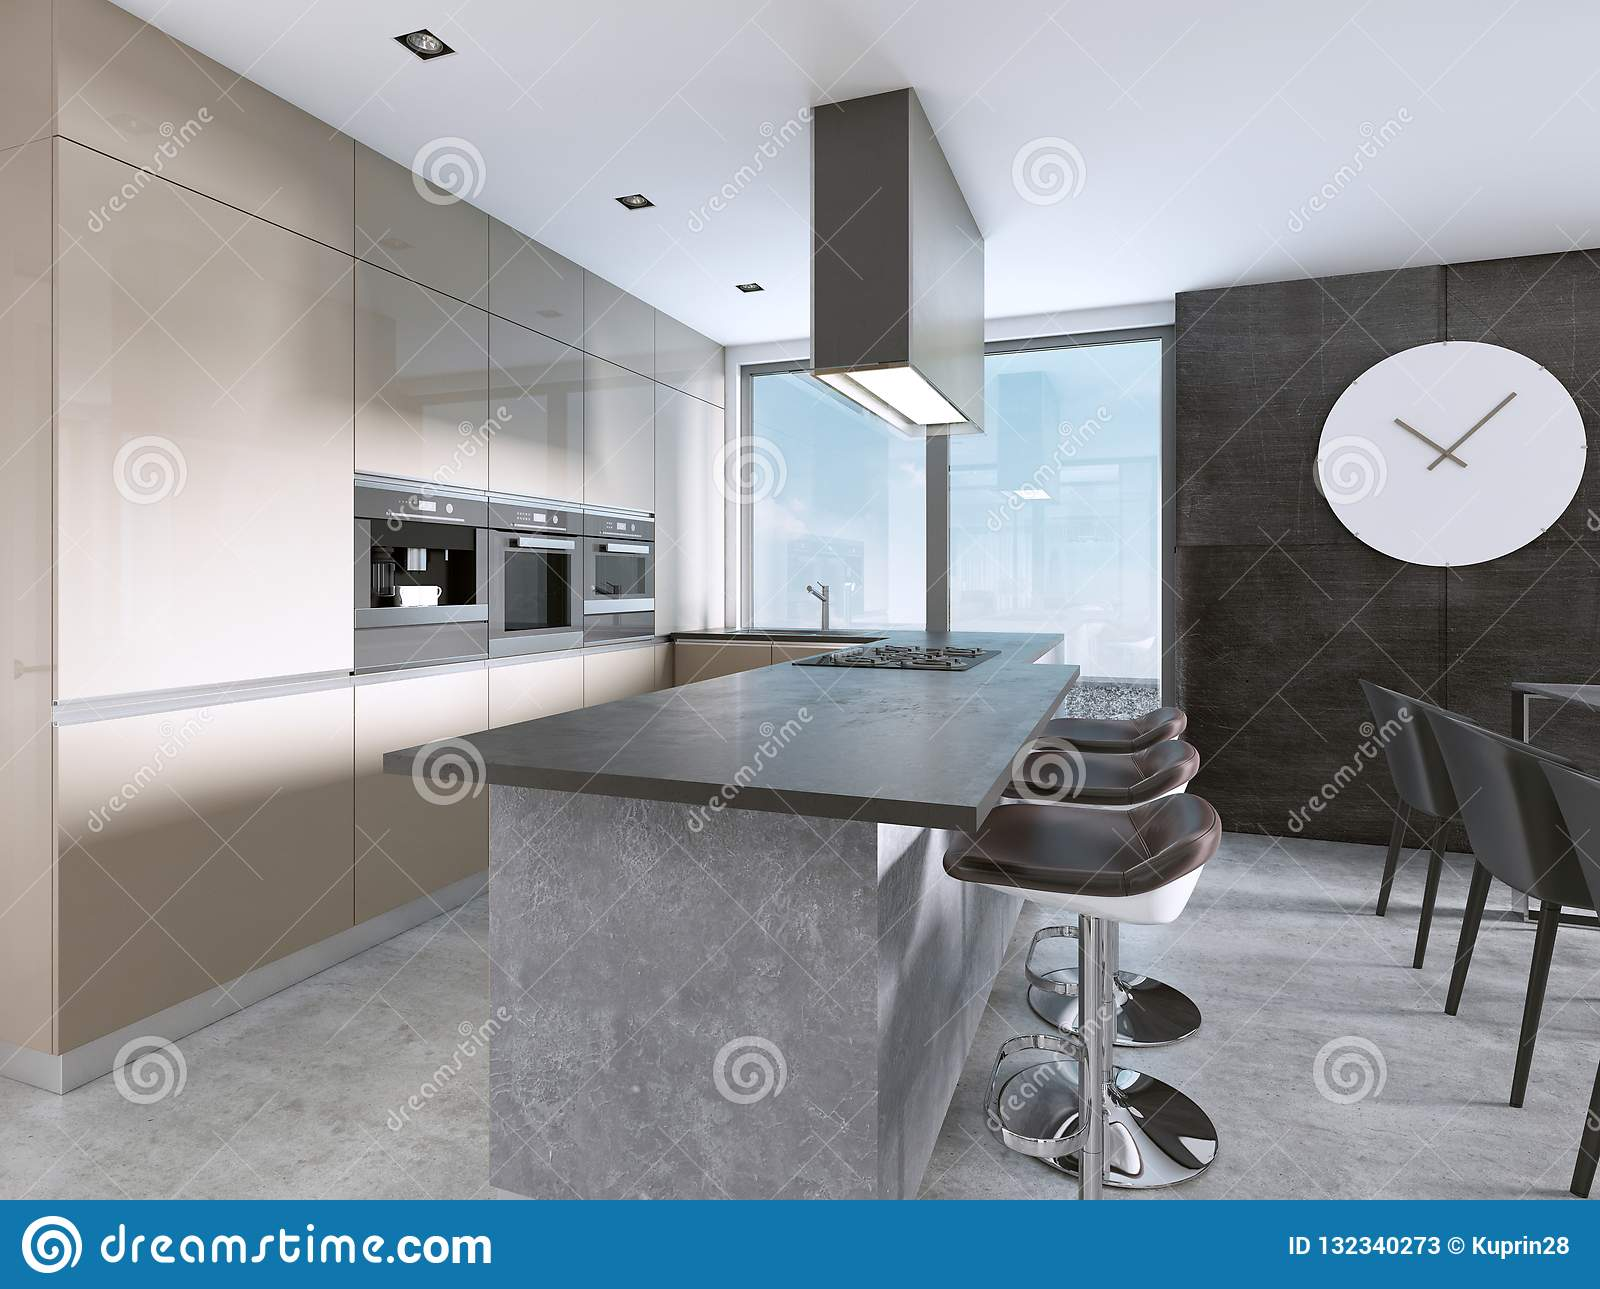 Contemporary Kitchen With Large Windows And Island With Bar